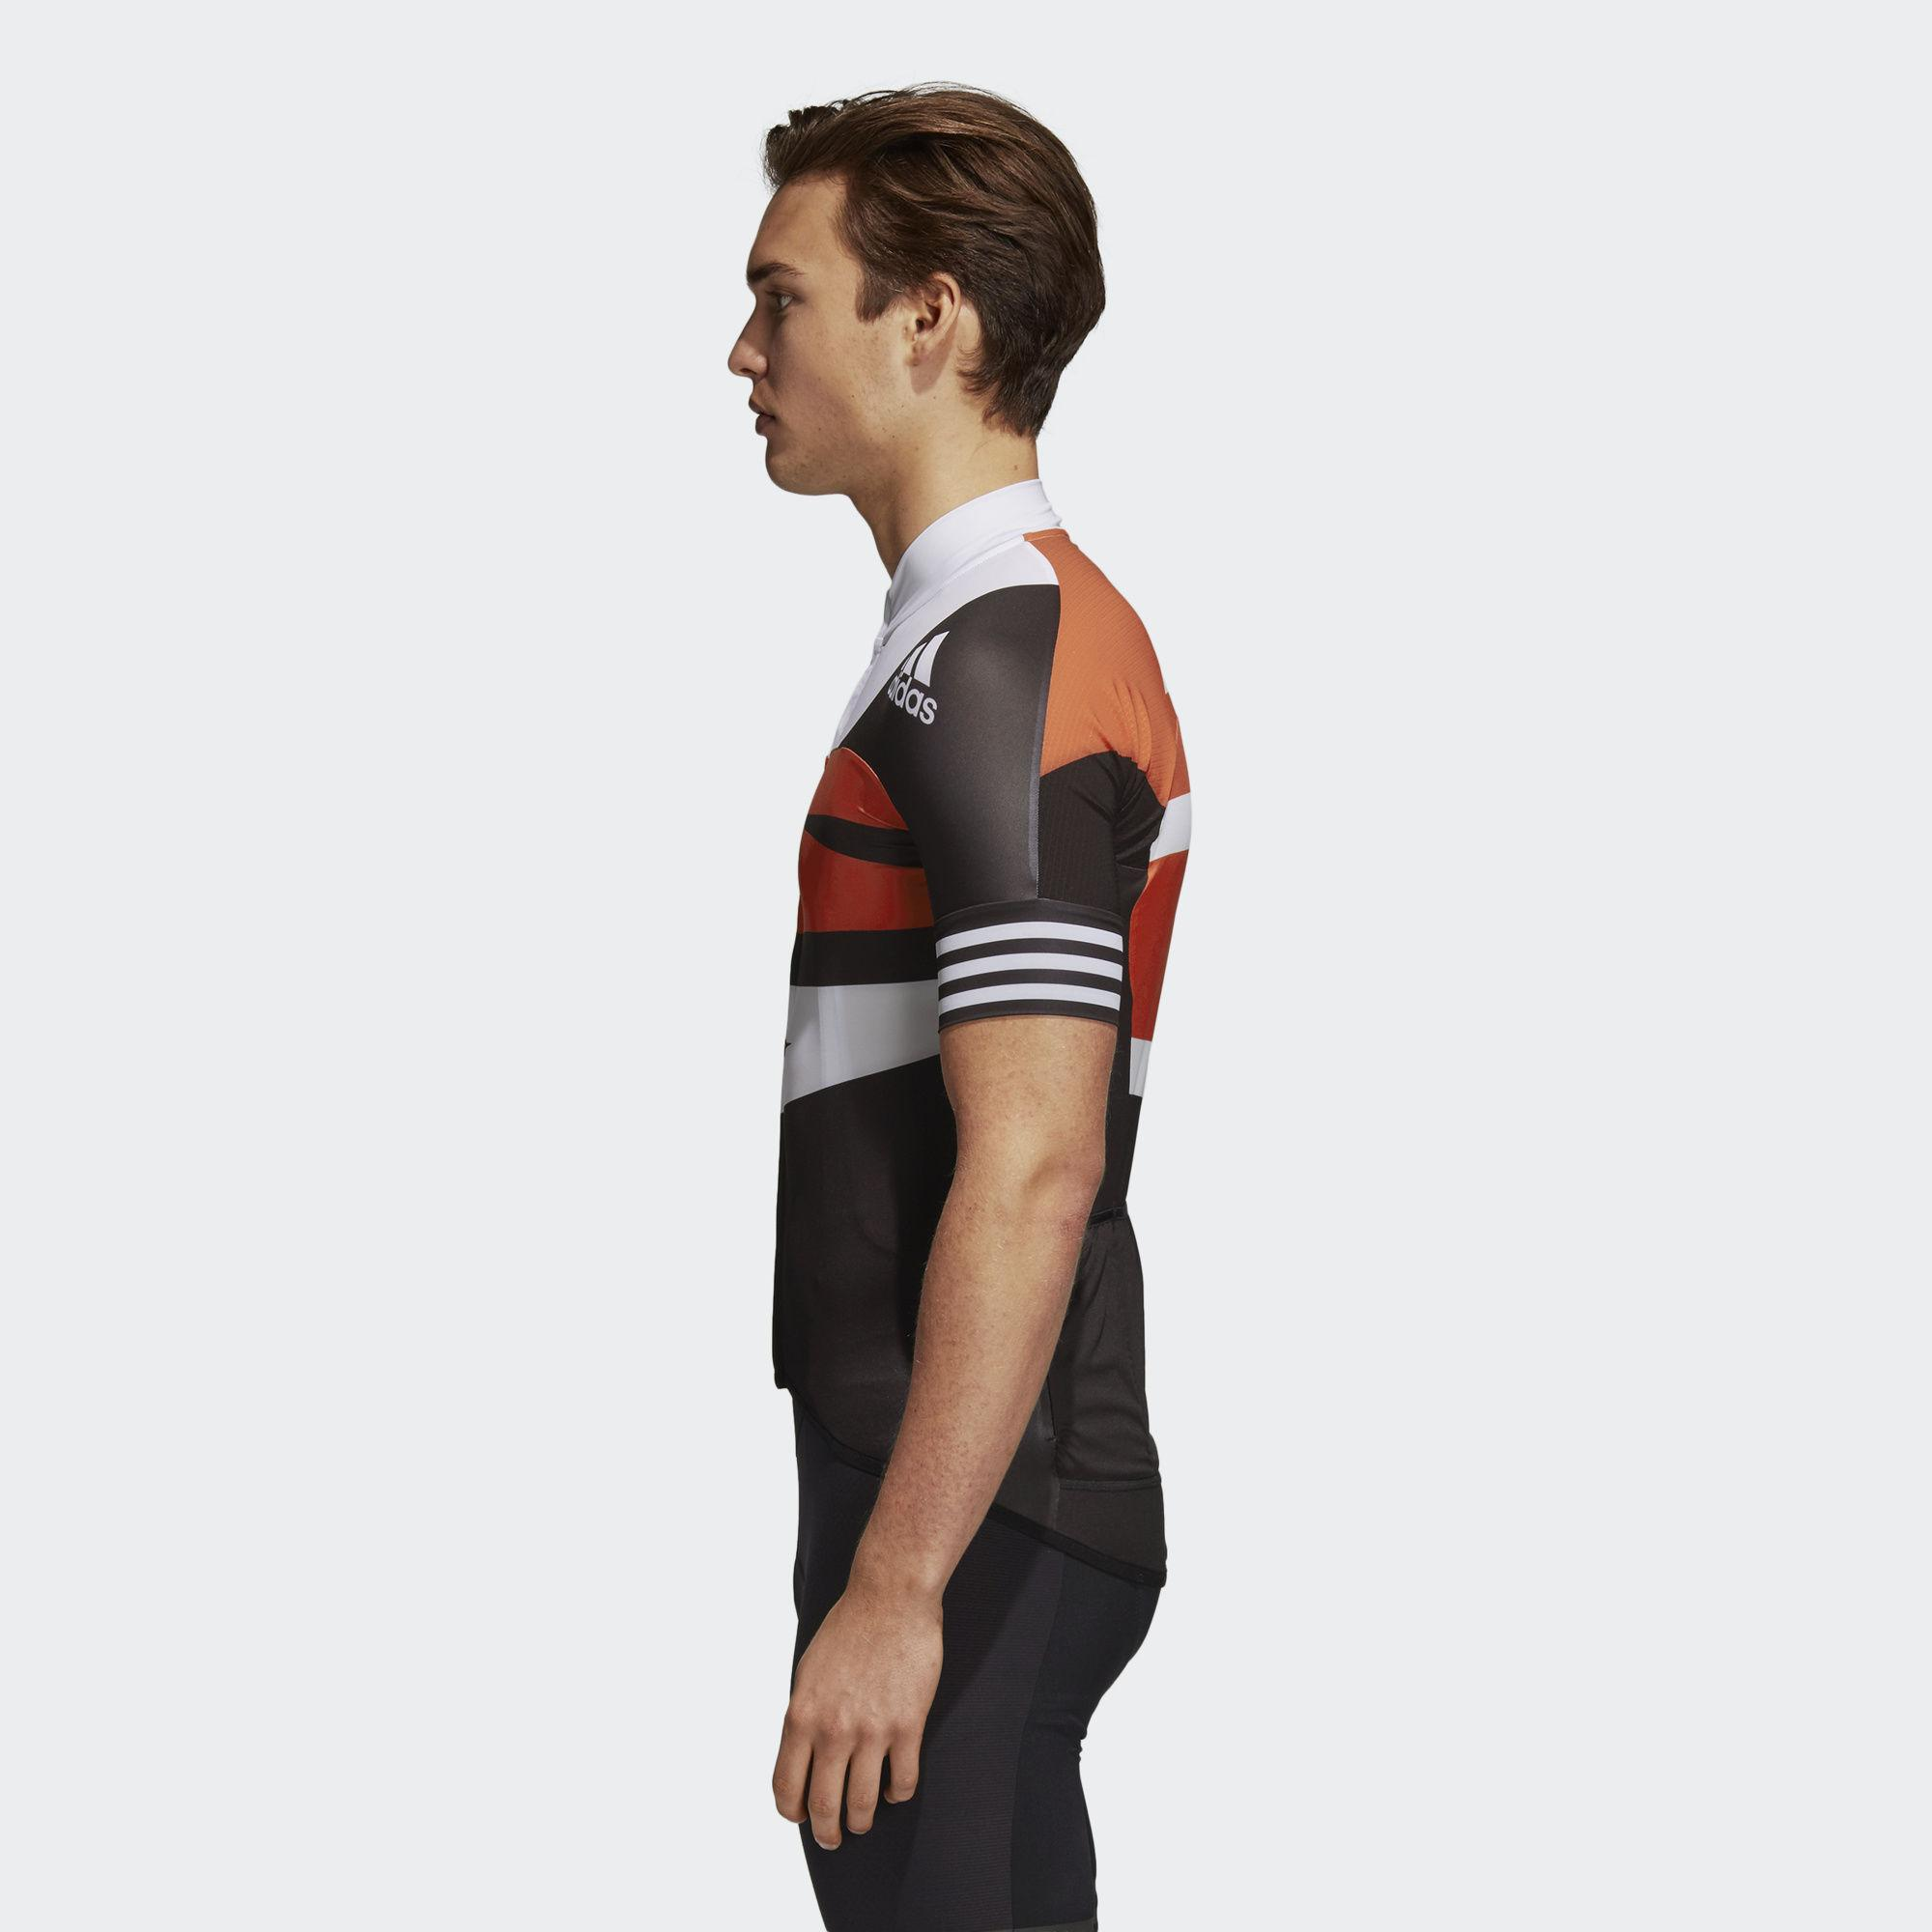 Adidas - Multicolor Adistar Graphic Cycling Jersey for Men - Lyst. View  fullscreen f51e39178